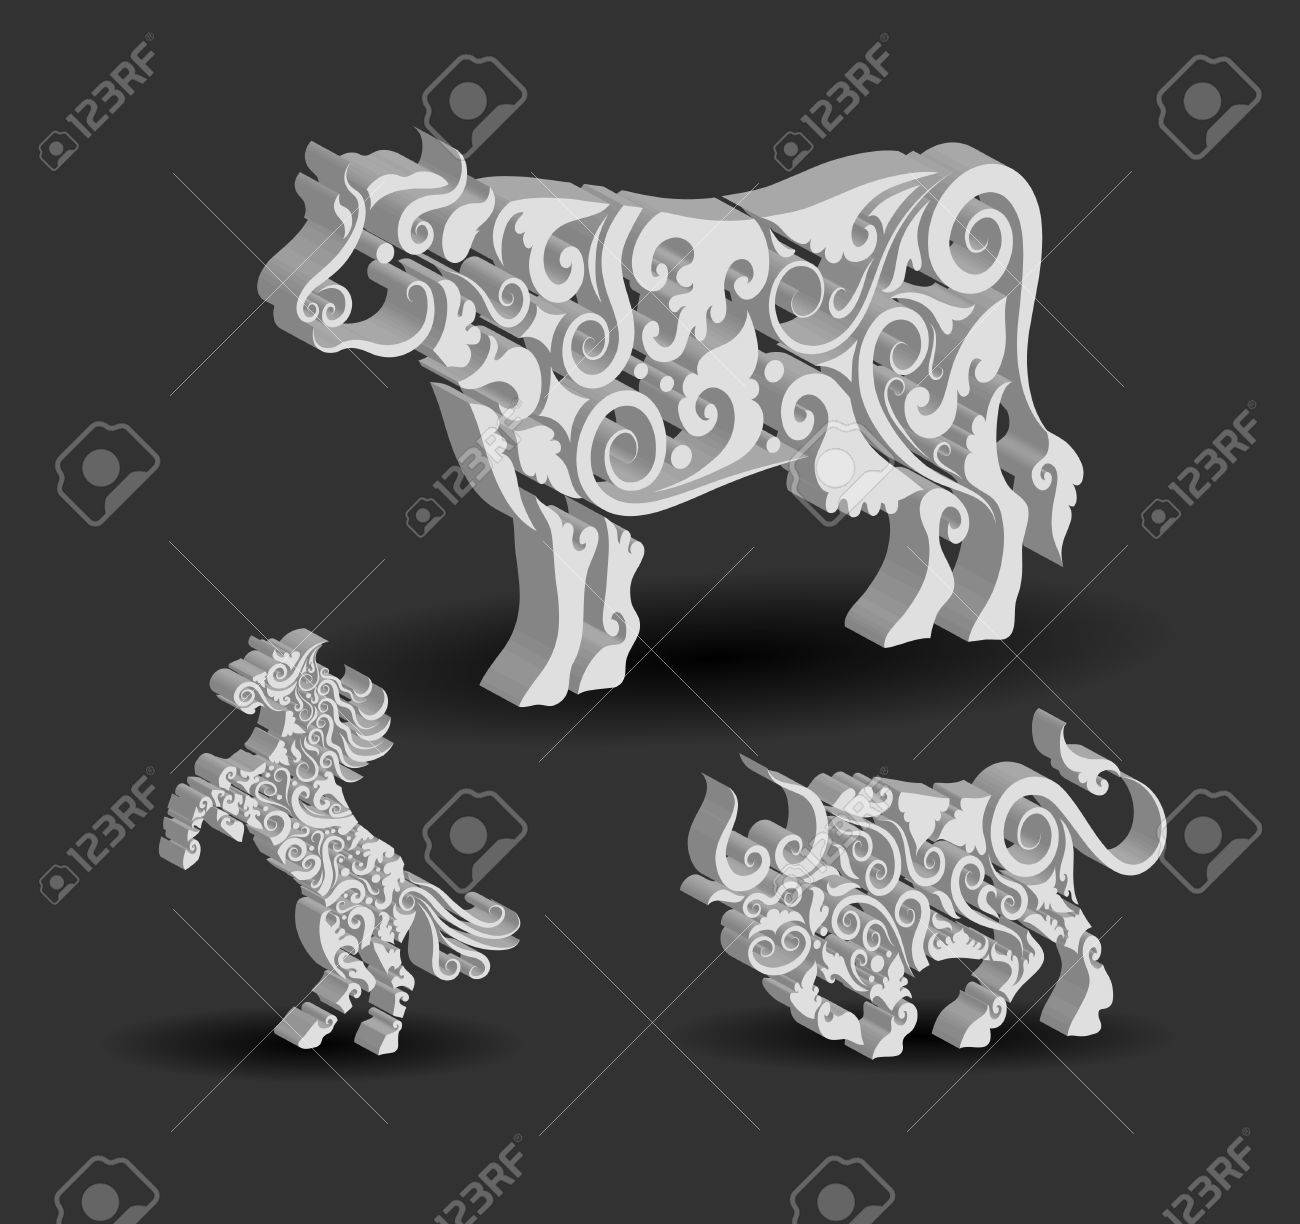 Animal ornaments - Animal Engraving Ornaments 3d Cow Horse And Bull Stock Vector 20212467